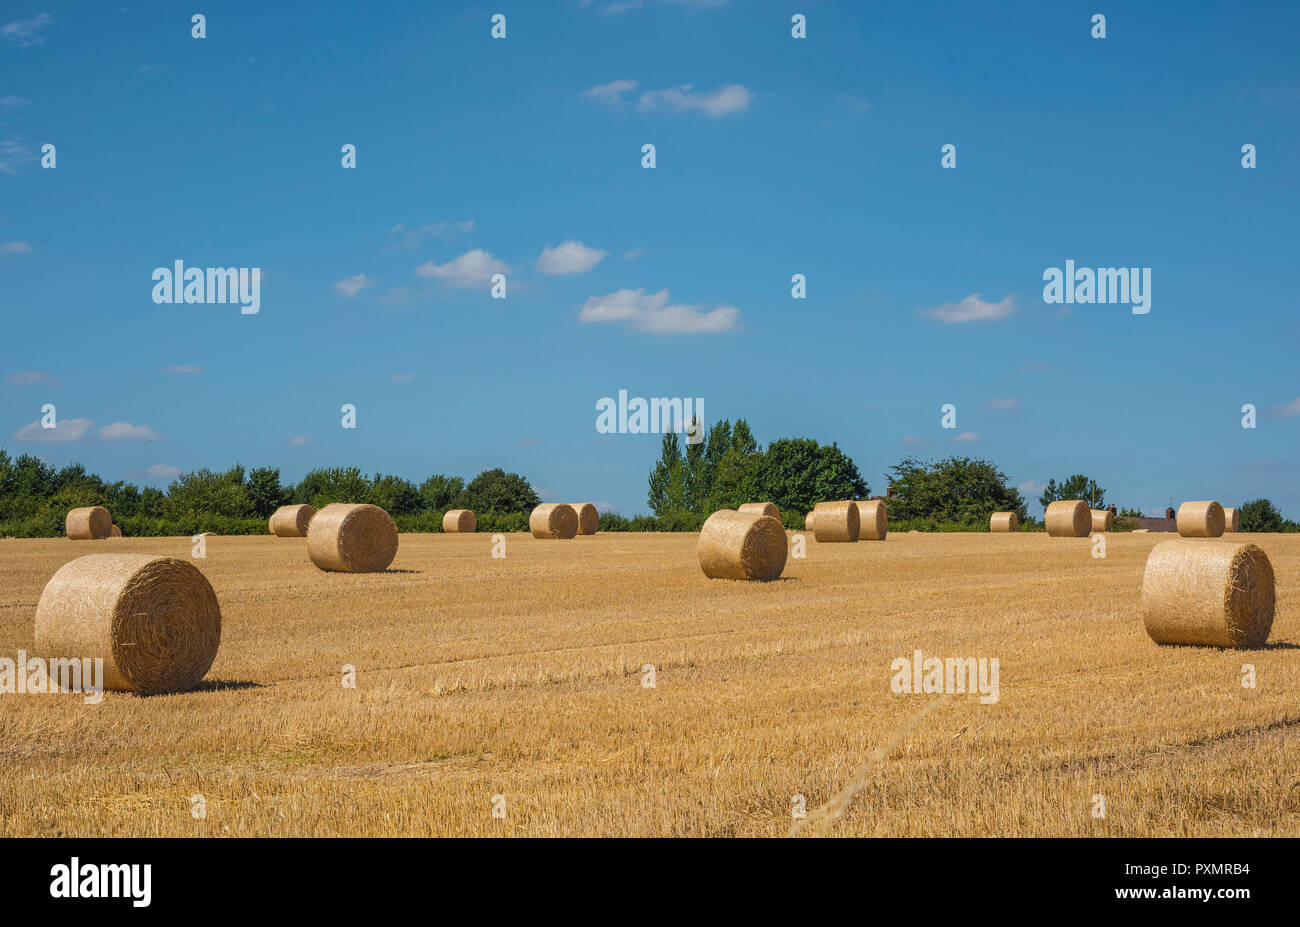 Rounded bails of hay in a harvested farmers field in the Derbyshire countryside. England UK - Stock Image